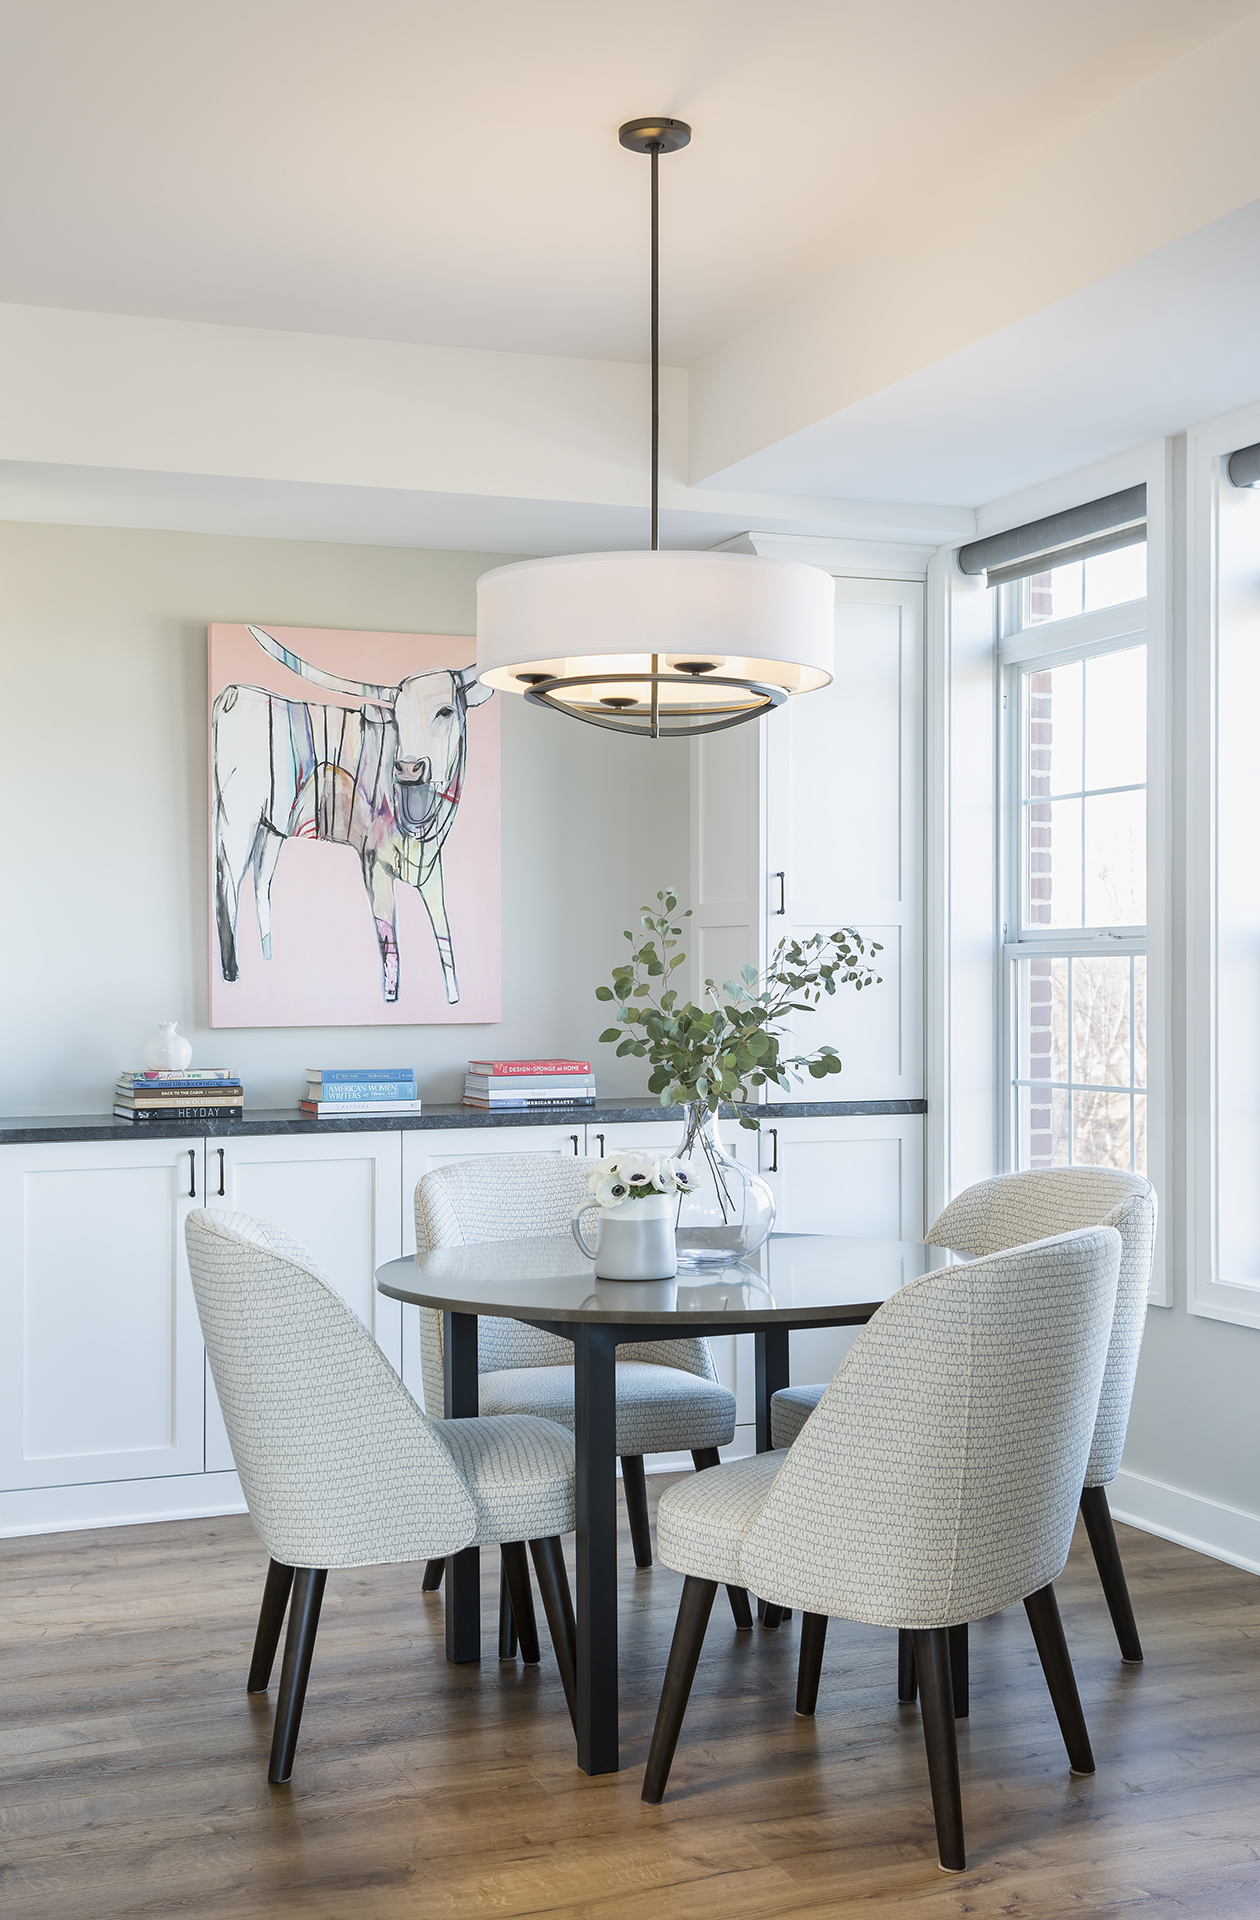 The custom cabinetry continues into the dining room and creates a seamless look that makes the entire space feel larger.